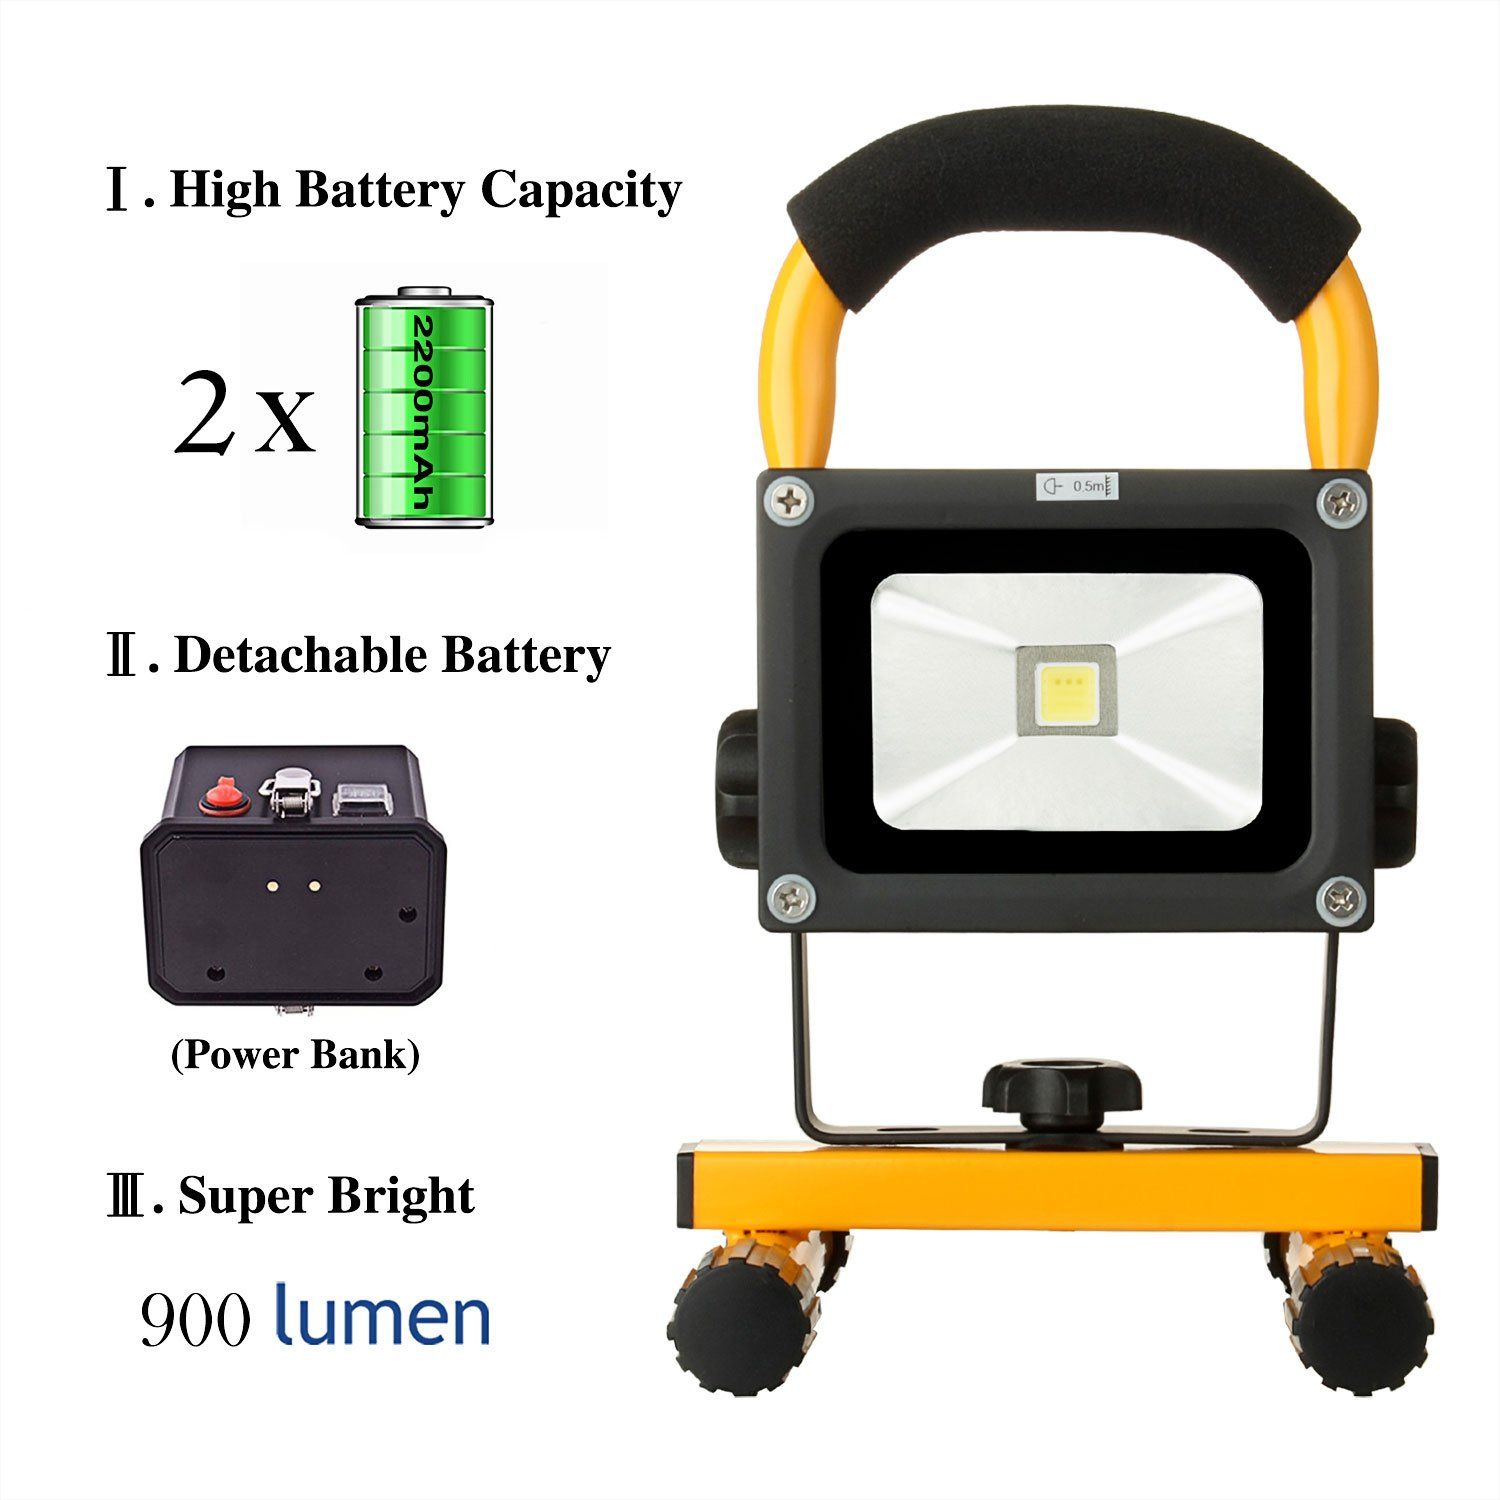 10w work light loftek portable led outdoor flood light and detachable 4400mah battery charger waterproof 700900lm yellow cordless tool battery packs